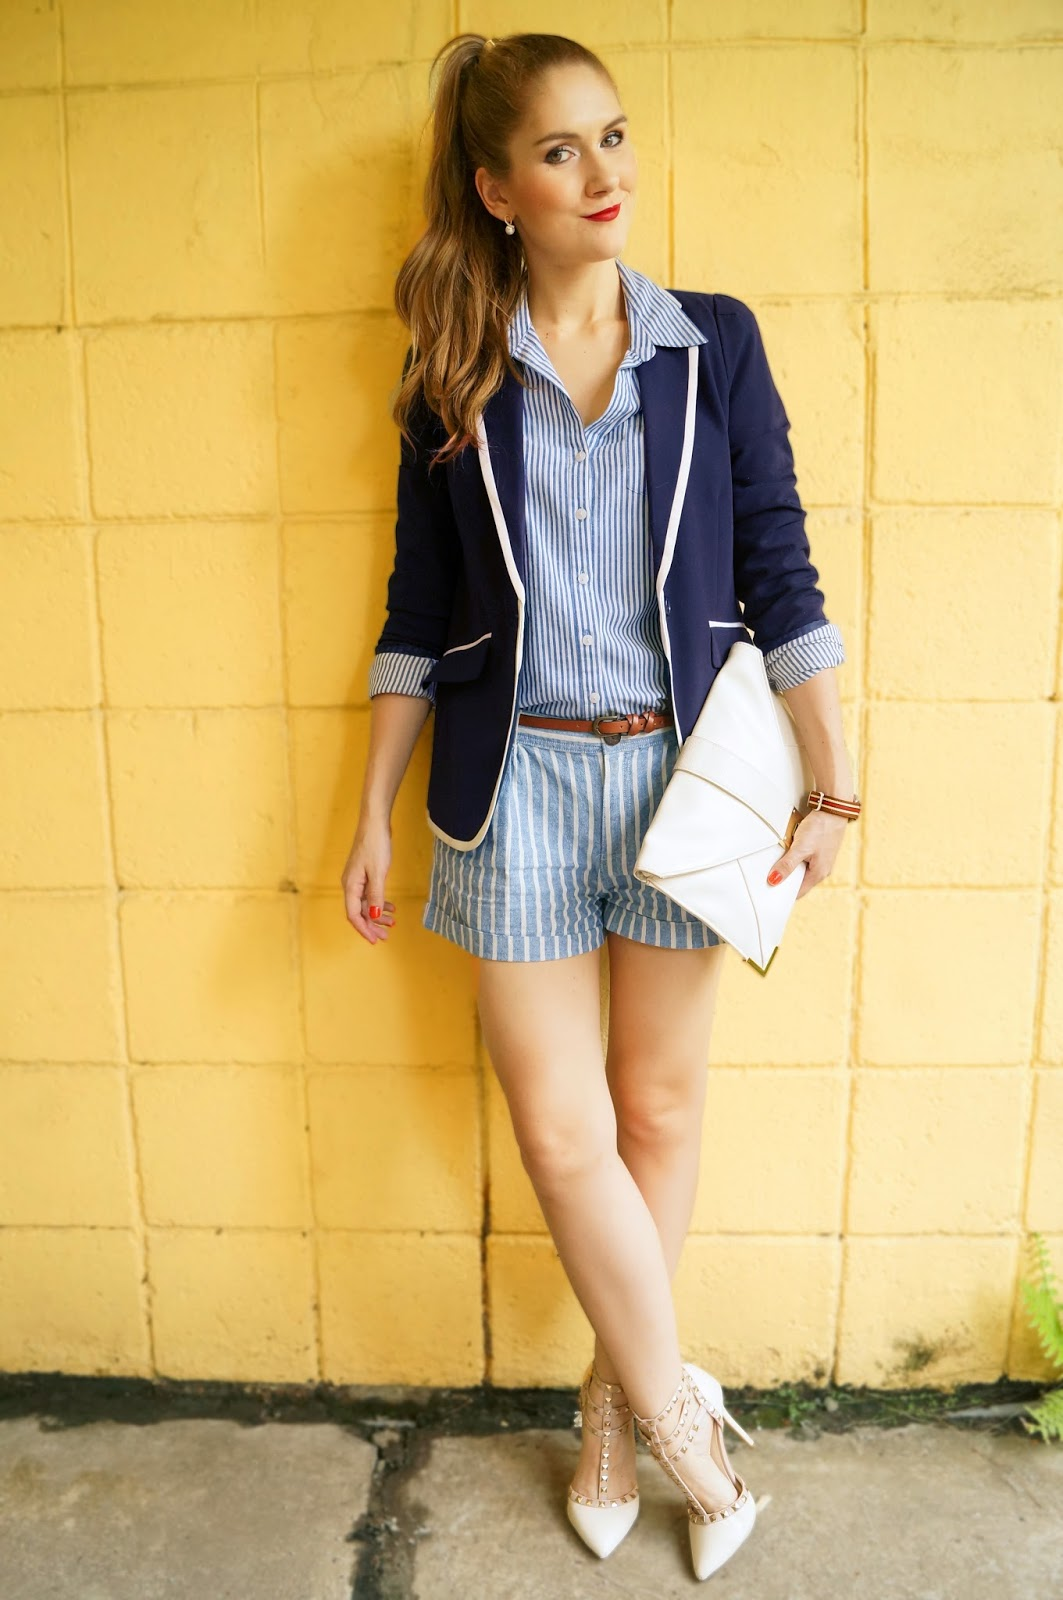 Love this nautical outfit mixing stripes!